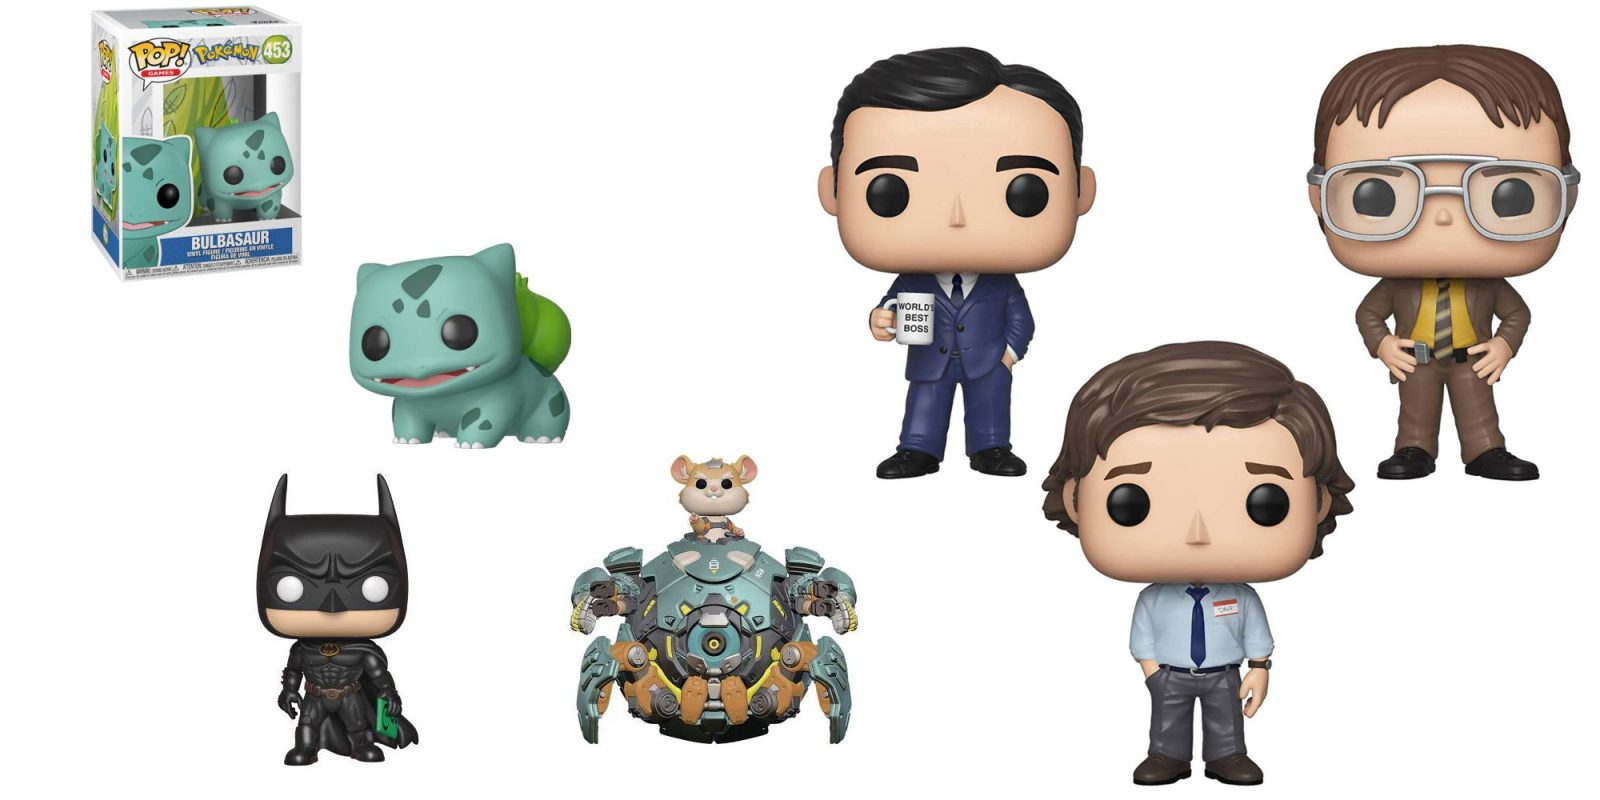 Grab 3 Funko POP! figures for $20: The Office, Marvel, Pokémon, many more